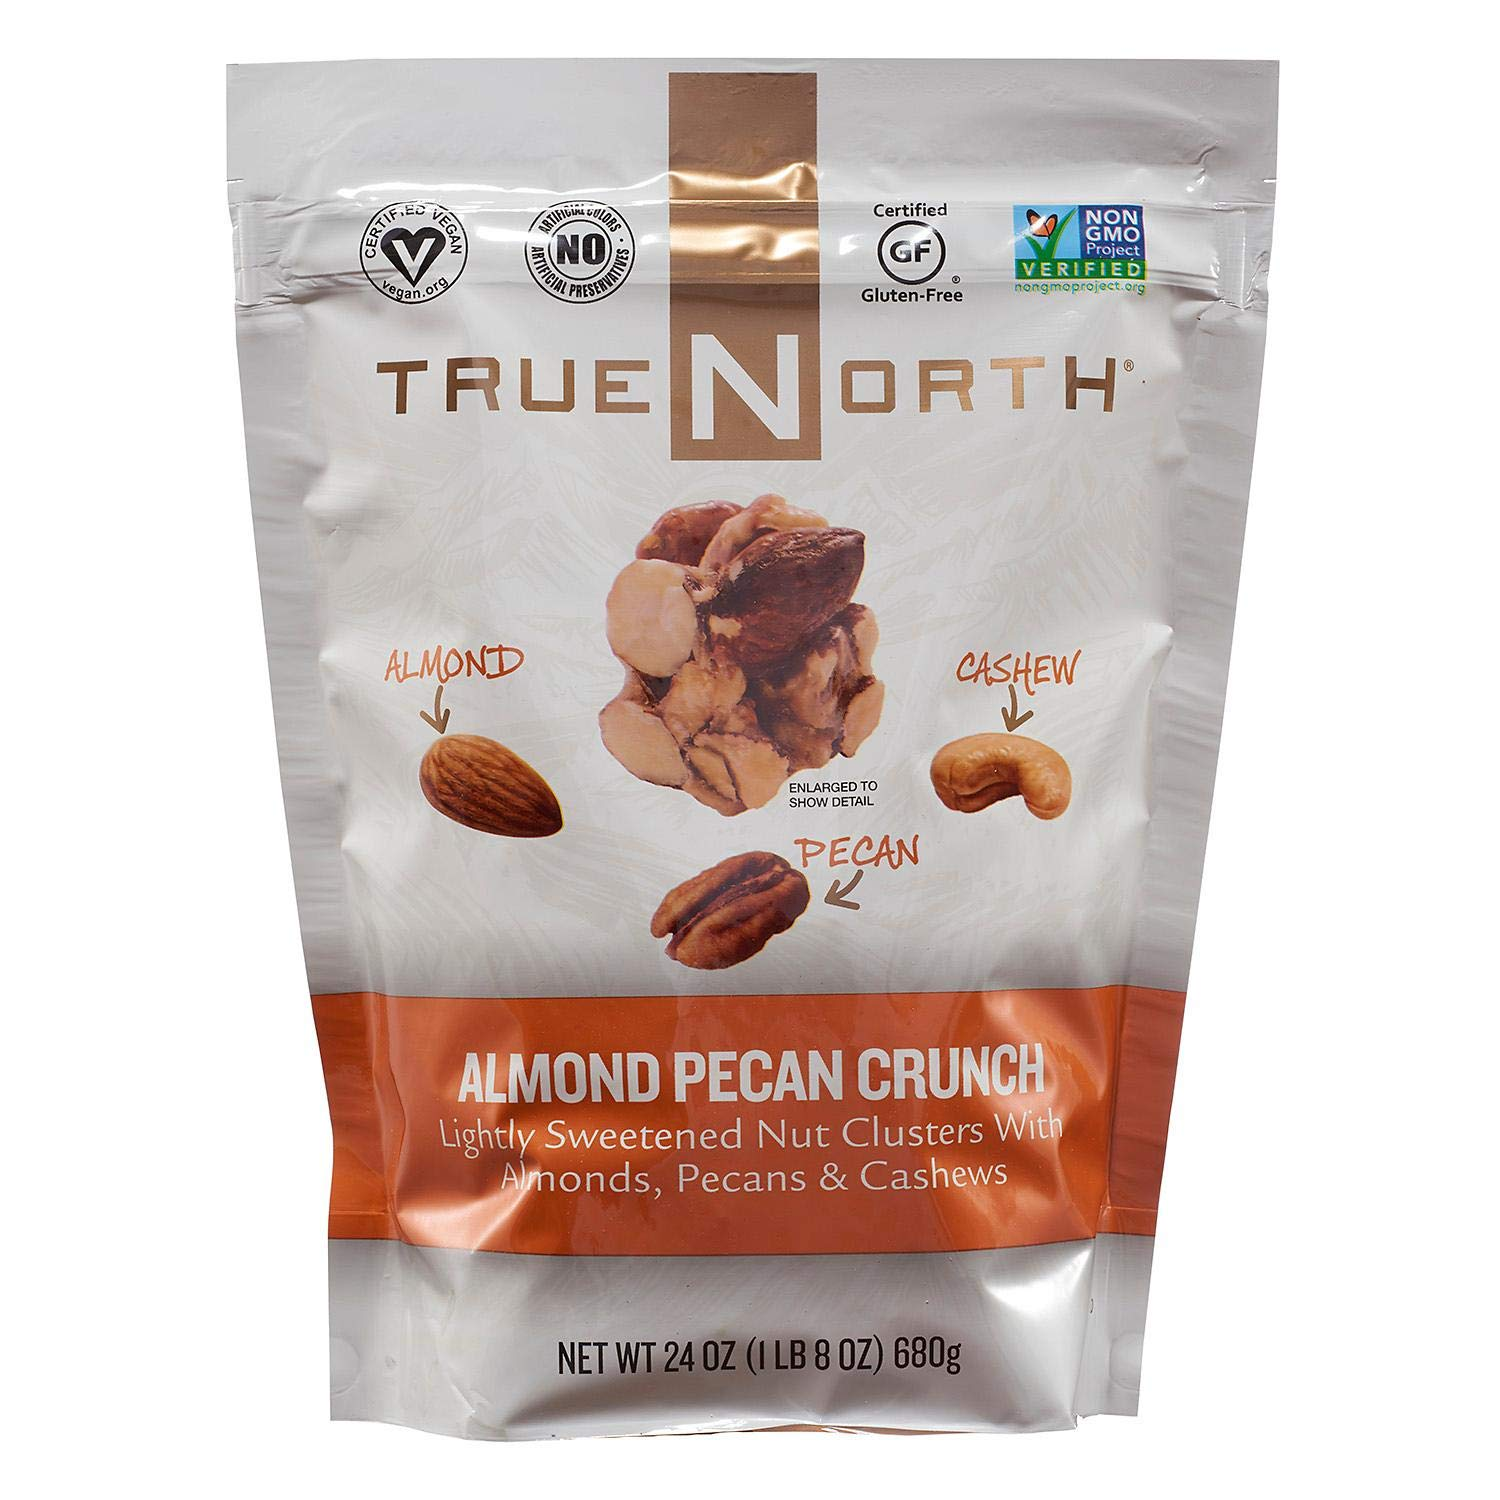 TrueNorth Almond Pecan Cashew Clusters Net Wt 24 Oz (680g) (Pack of 2)